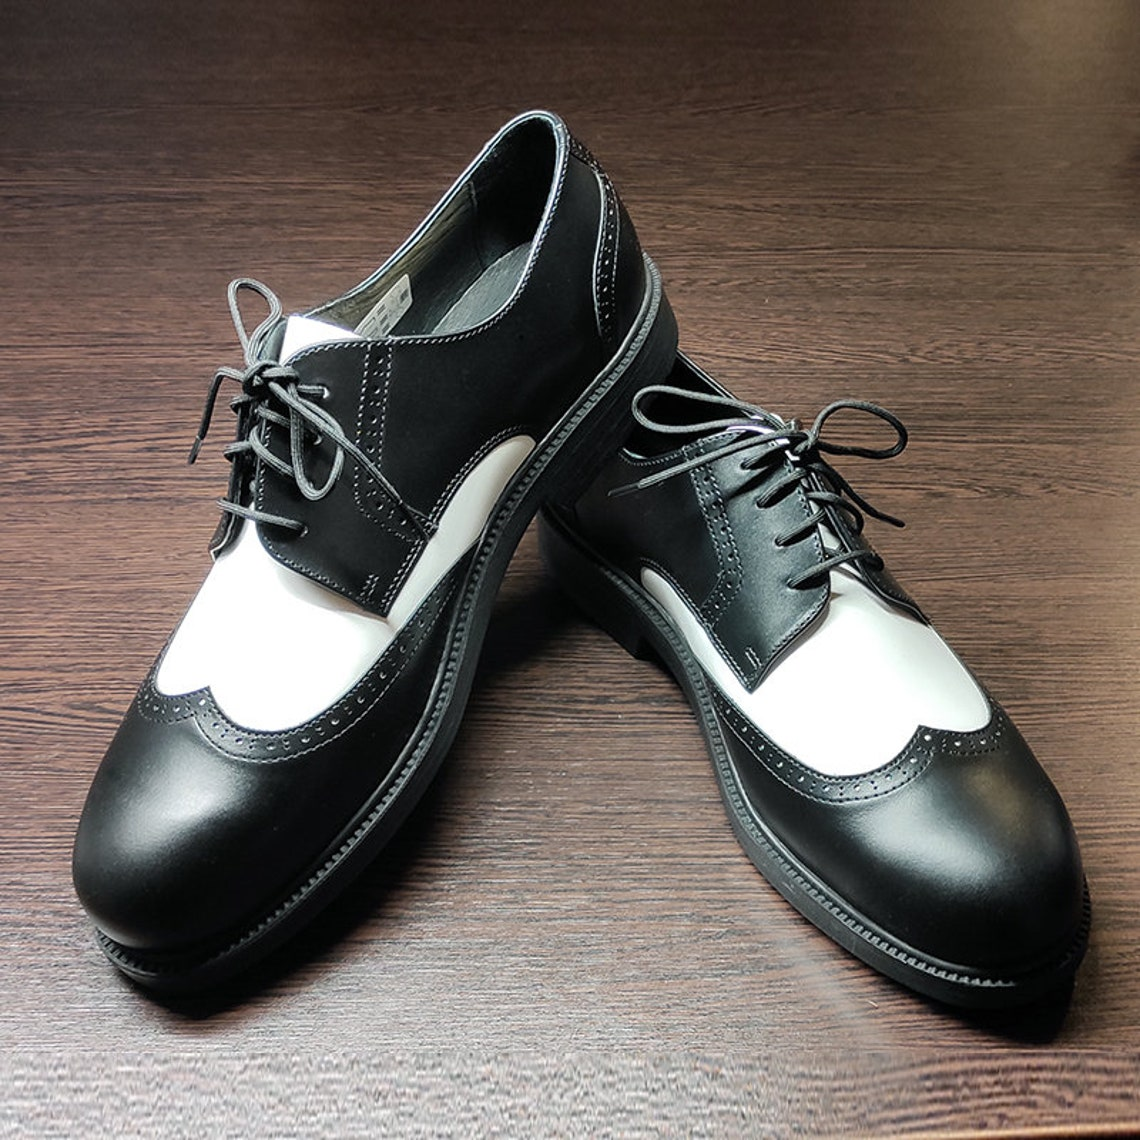 1940s Style Shoes, 40s Shoes, Heels, Boots Black and White Vintage Style Brogue Shoes Wingtip shoes - real leather $139.95 AT vintagedancer.com